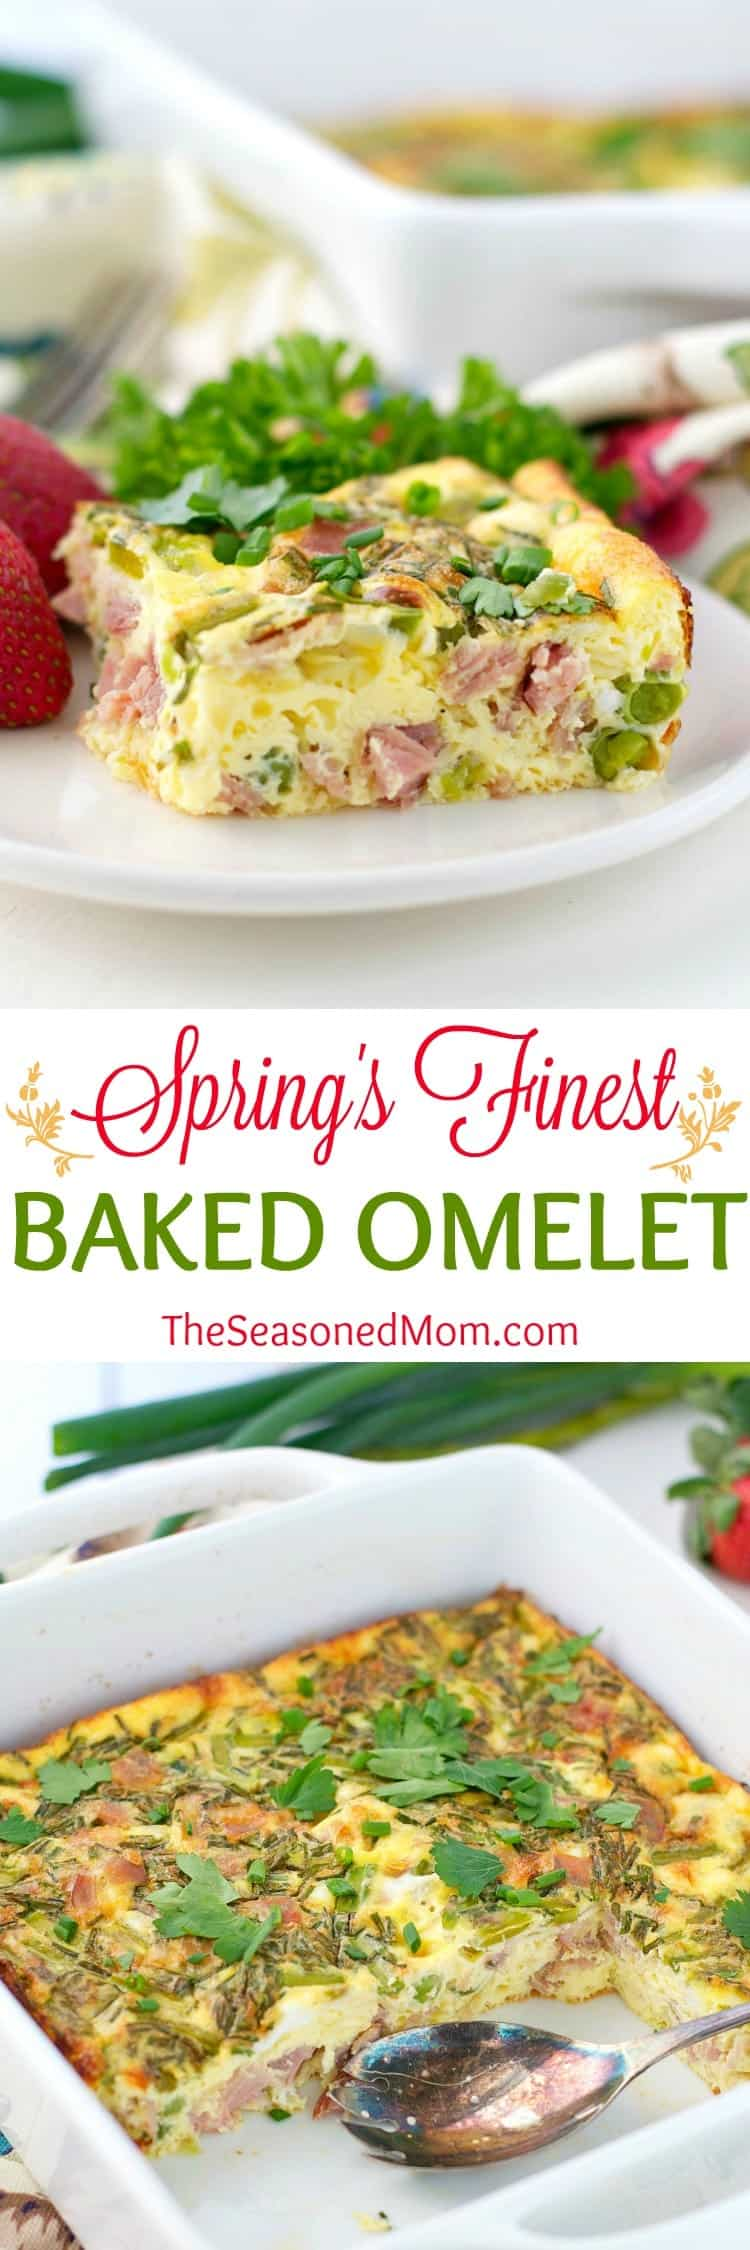 Spring's Finest Baked Omelet is the easiest way to serve eggs to a crowd! Bursting with fresh asparagus, chives, peas, ham, and cheese, this easy brunch casserole celebrates all of the season's most delicious ingredients!